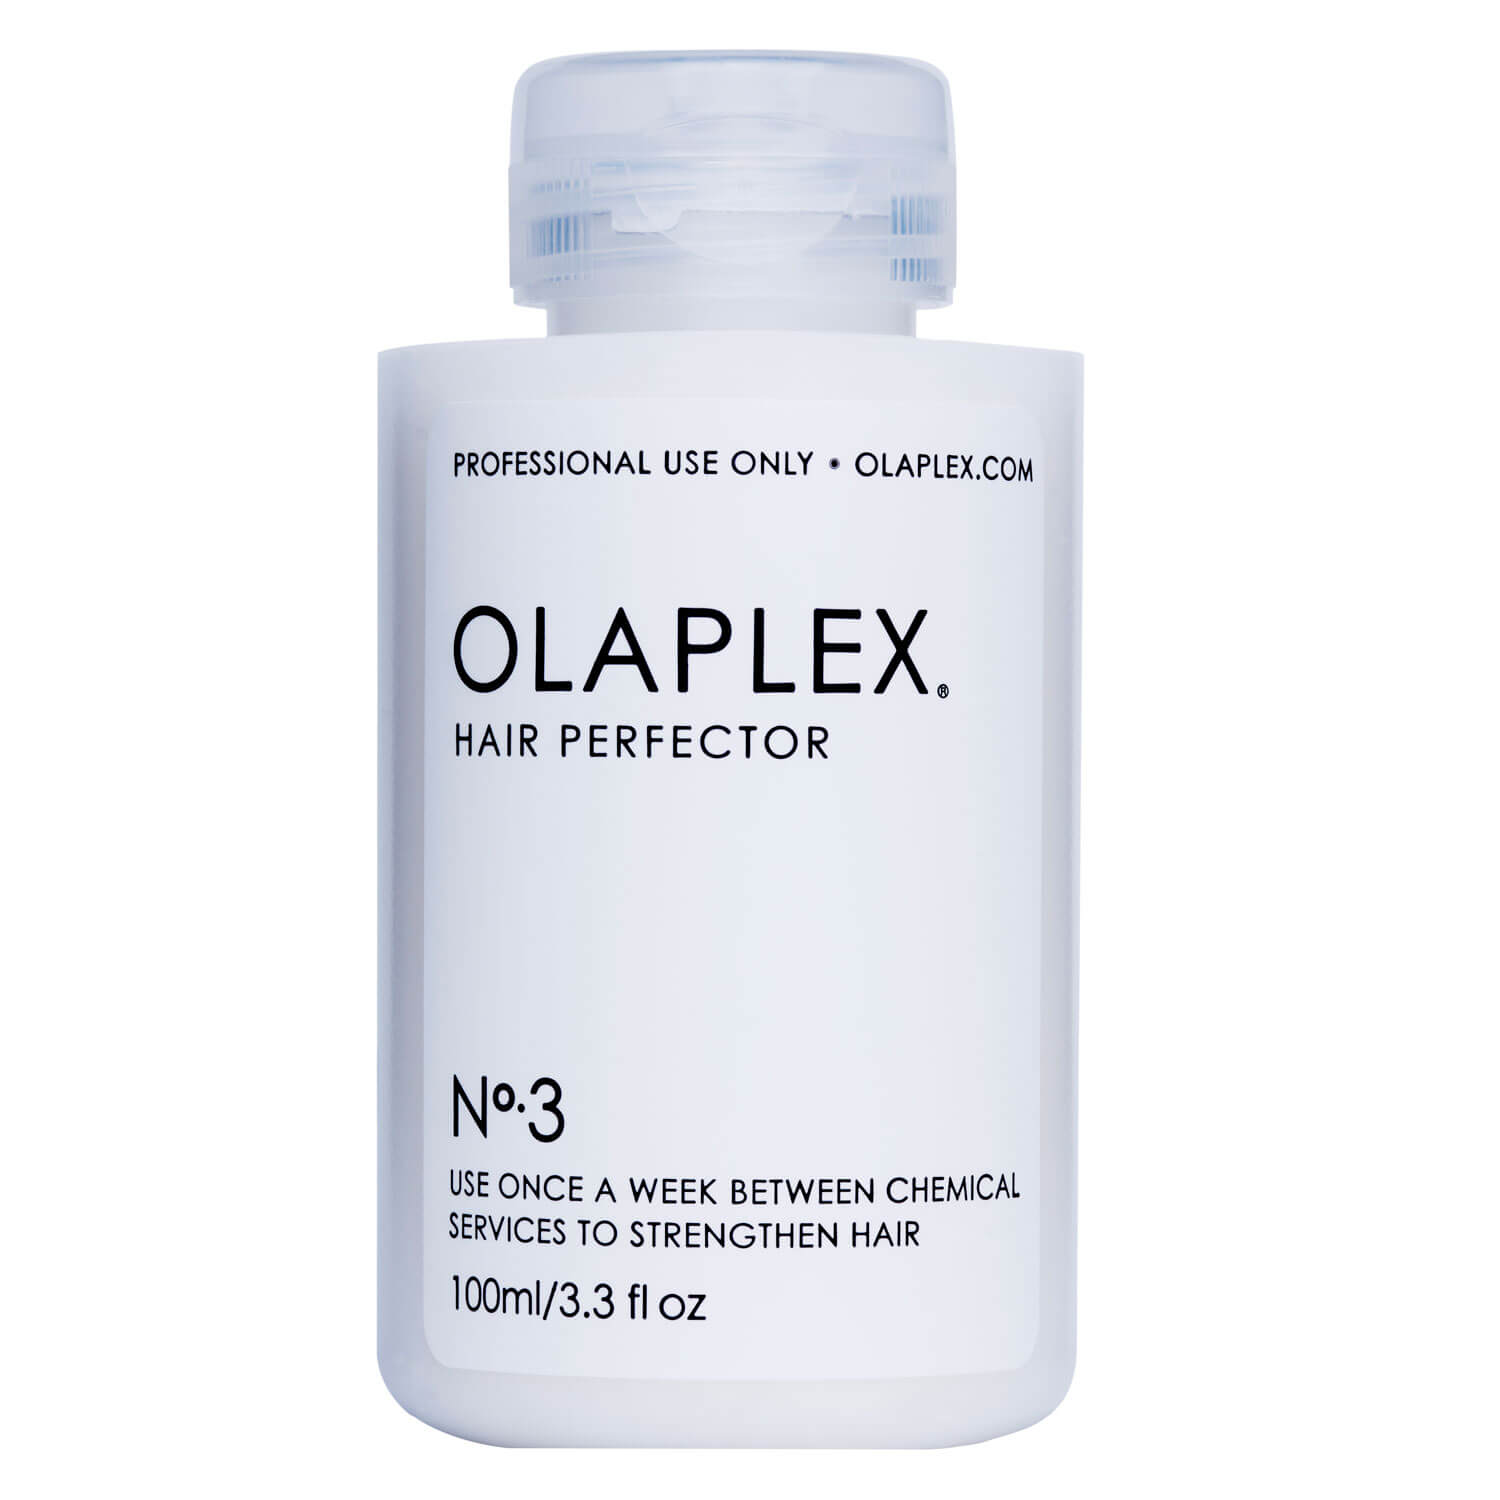 Olaplex - Hair Perfector No. 3